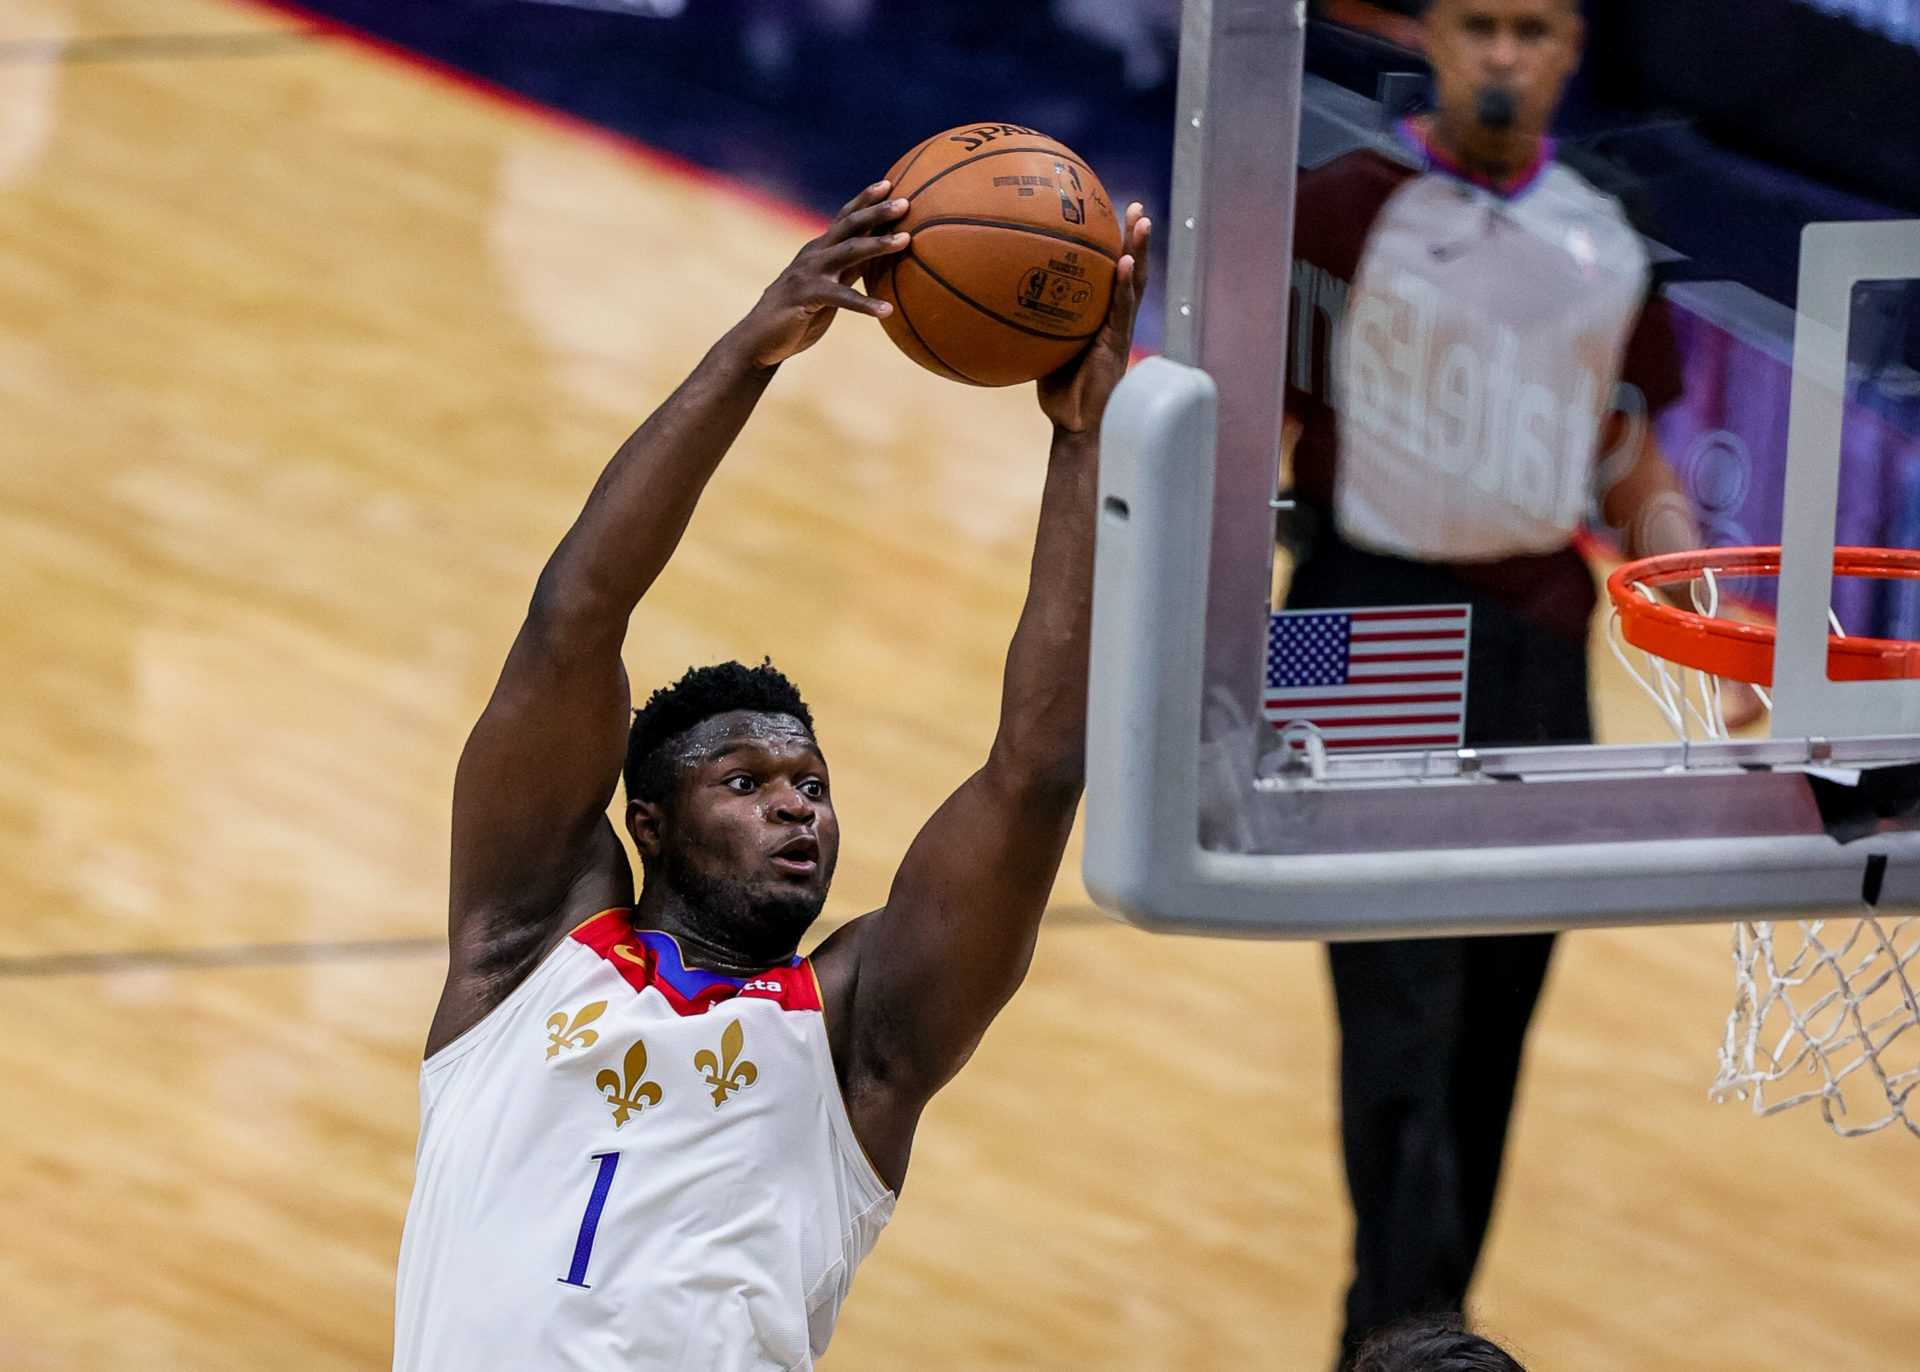 'Shaquille O'Neal-Type': Mavericks Coach prisar Force of Nature Zion Williamson